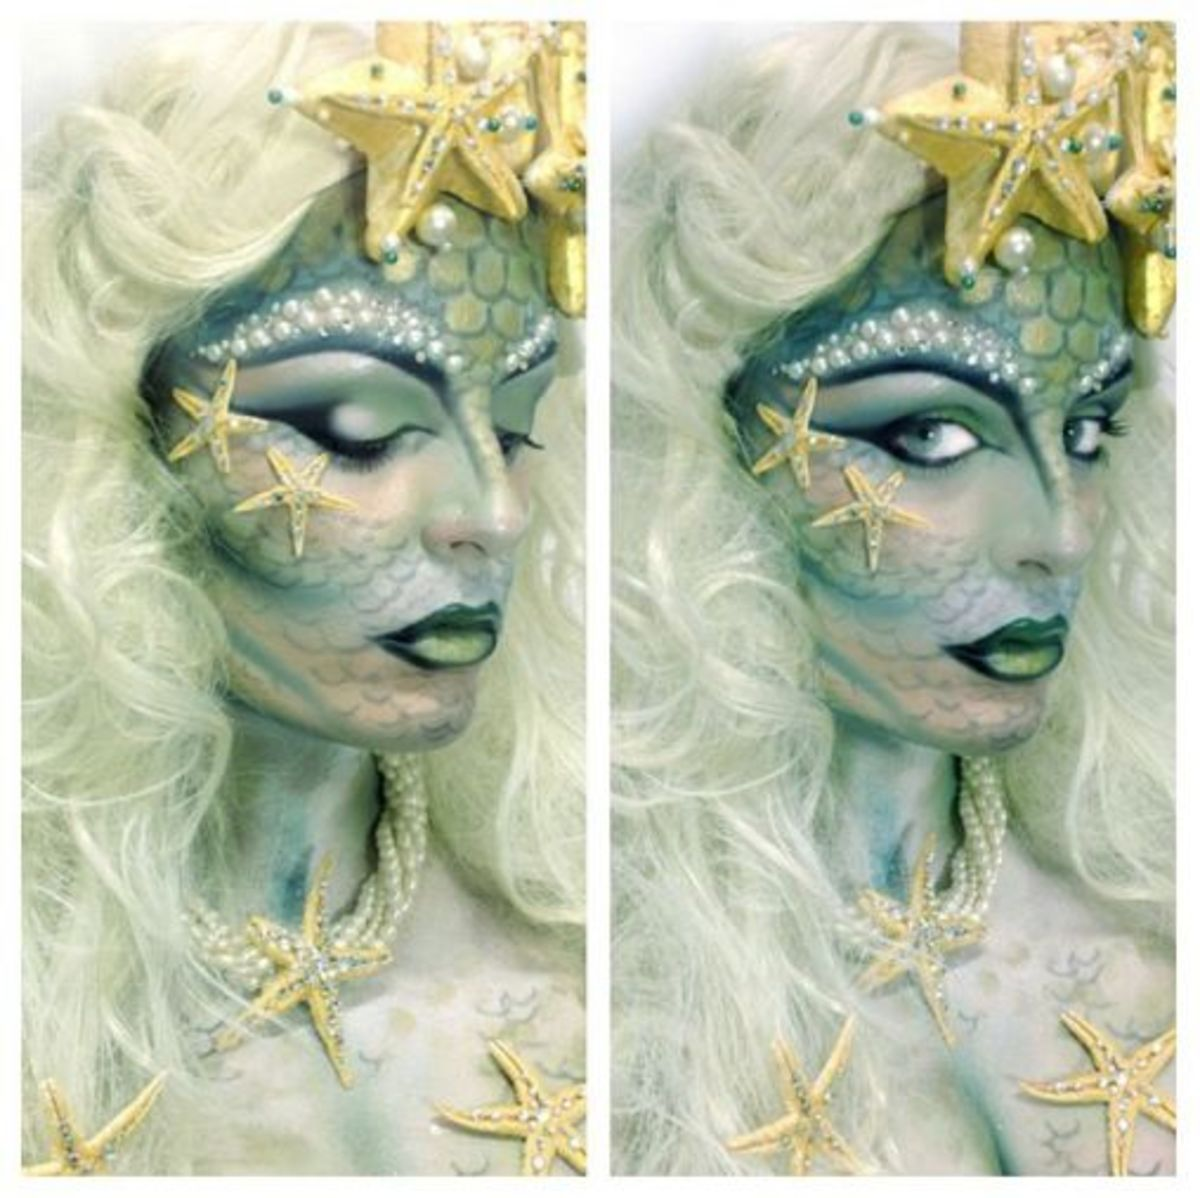 photograph of Cool mermaid makeup on woman